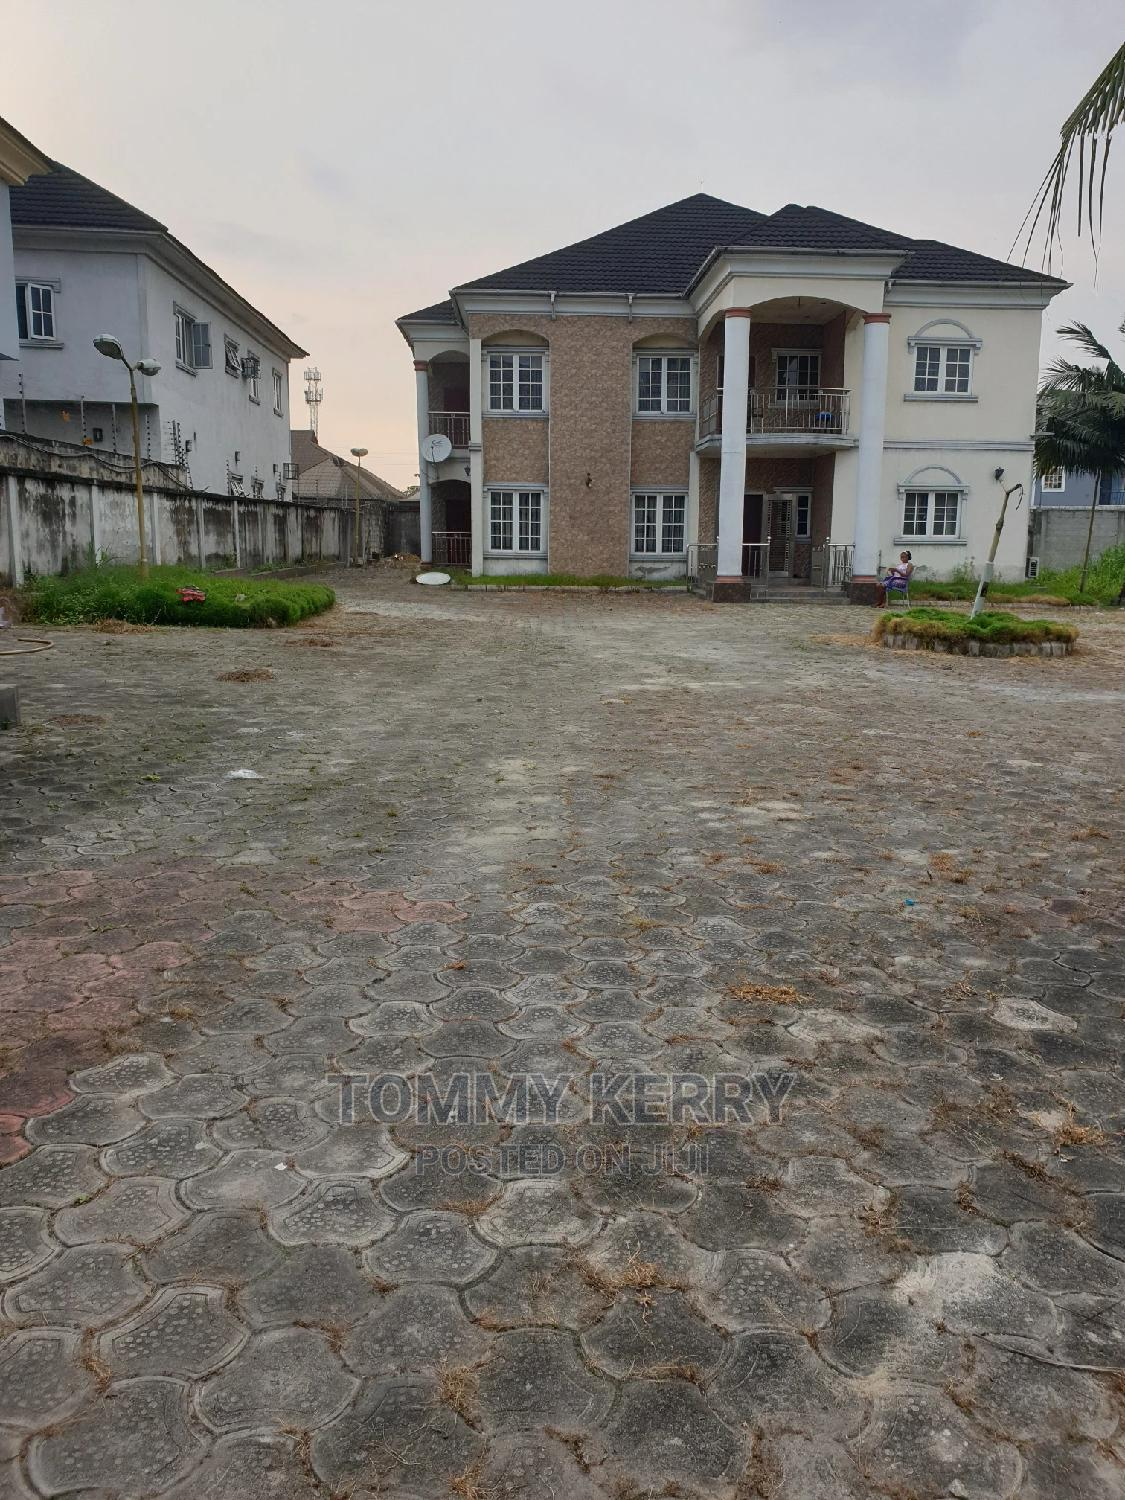 Super Standard Five Bedrooms Duplex for Sale   Houses & Apartments For Sale for sale in Trans Amadi, Port-Harcourt, Nigeria